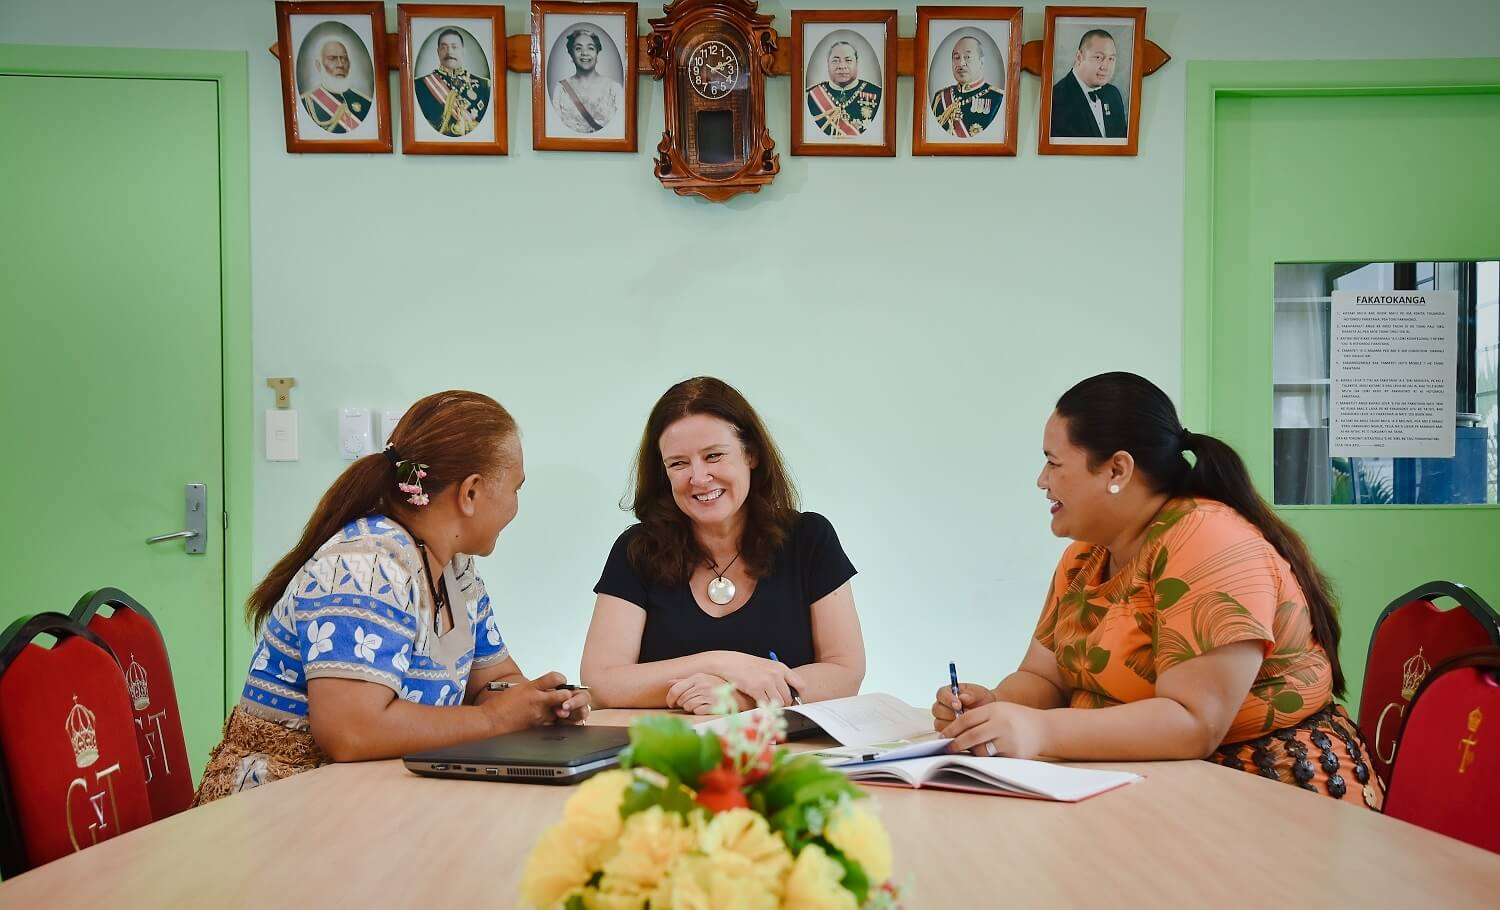 Julie Bowen - Supporting the transformation of the health system in Tonga